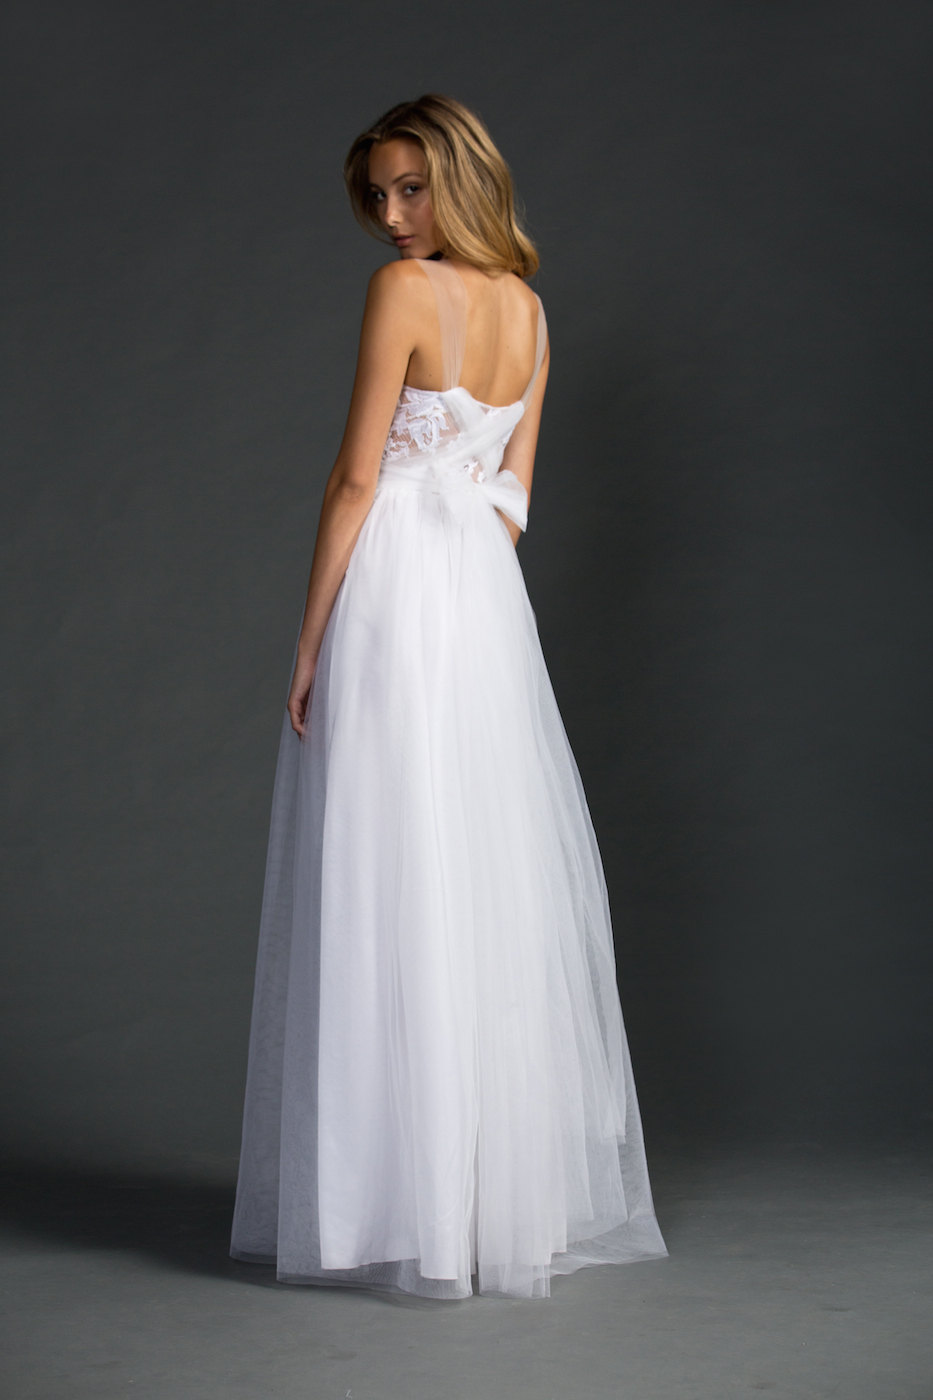 back view - dreamy sheer neckline wedding dress | via https://emmalinebride.com/bride/sheer-neckline-wedding-dress/